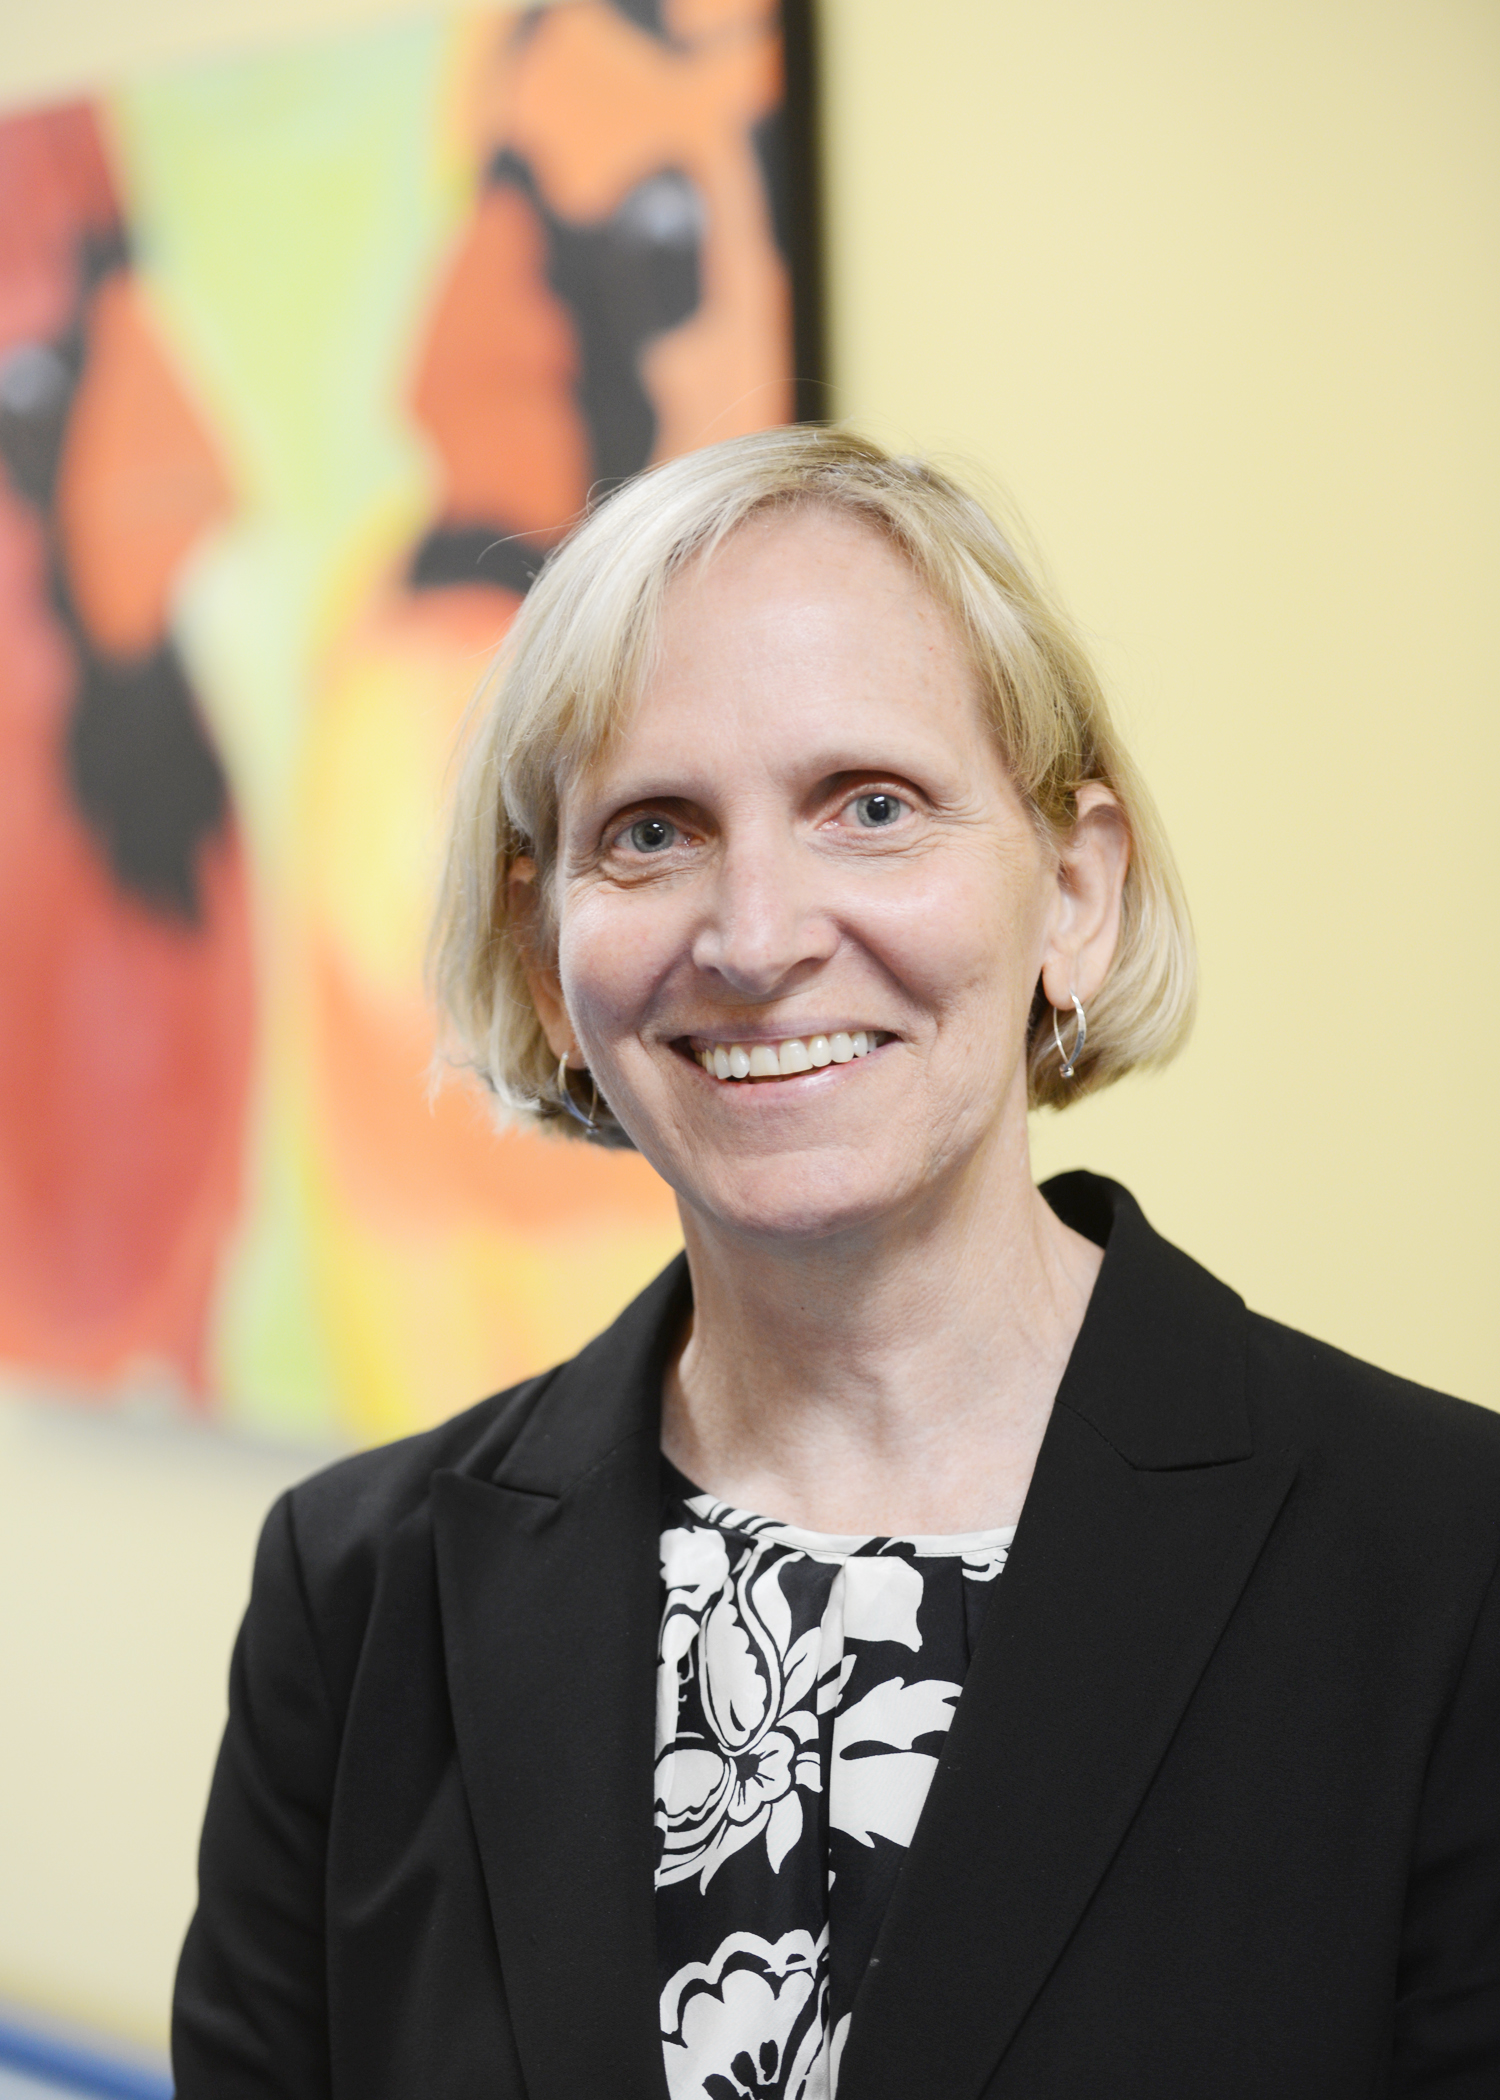 UofL spinal cord injury researcher delivers national physical therapy group lecture